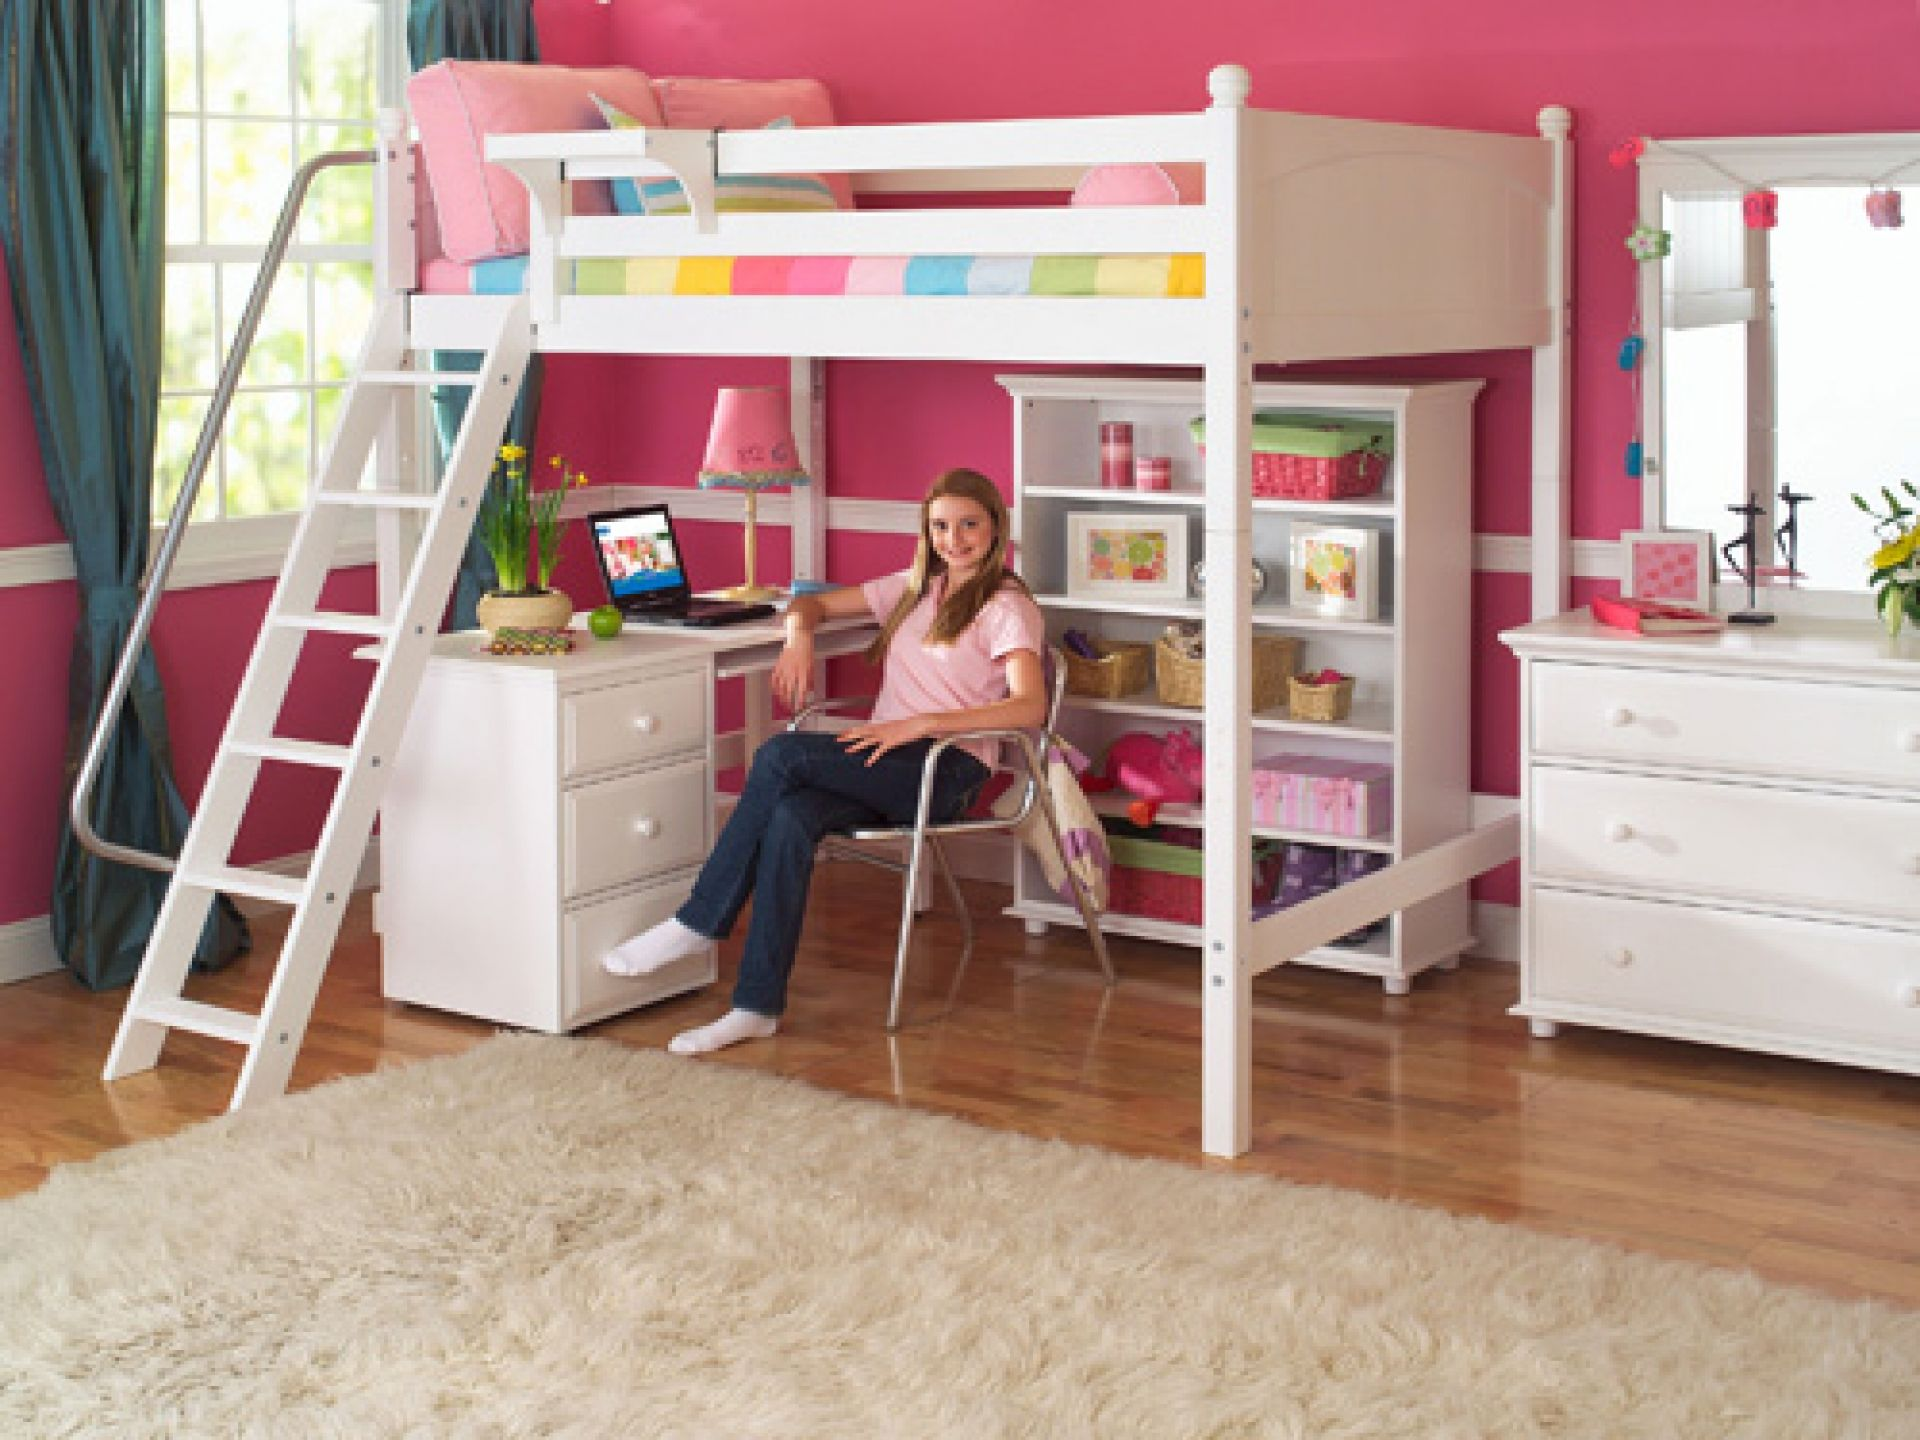 Best Loft Beds For Teenage Girls Girl Bedrooms Kids Loft Beds Girls Loft Bed Childrens Loft Beds